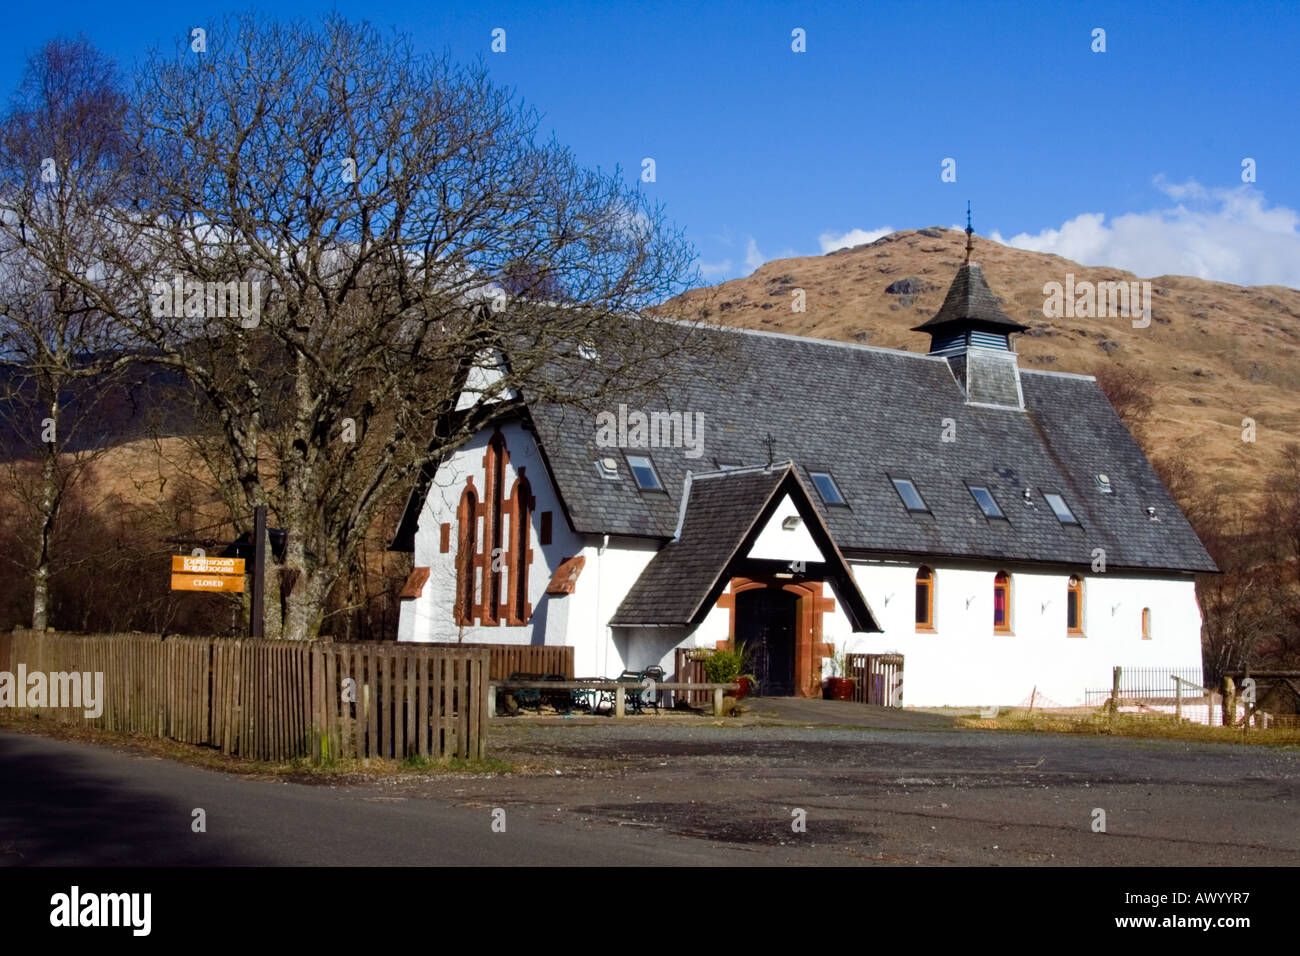 The Inversnaid Bunkhouse for hillwalkers is a converted church on the eastern shore of loch Lomond - Stock Image